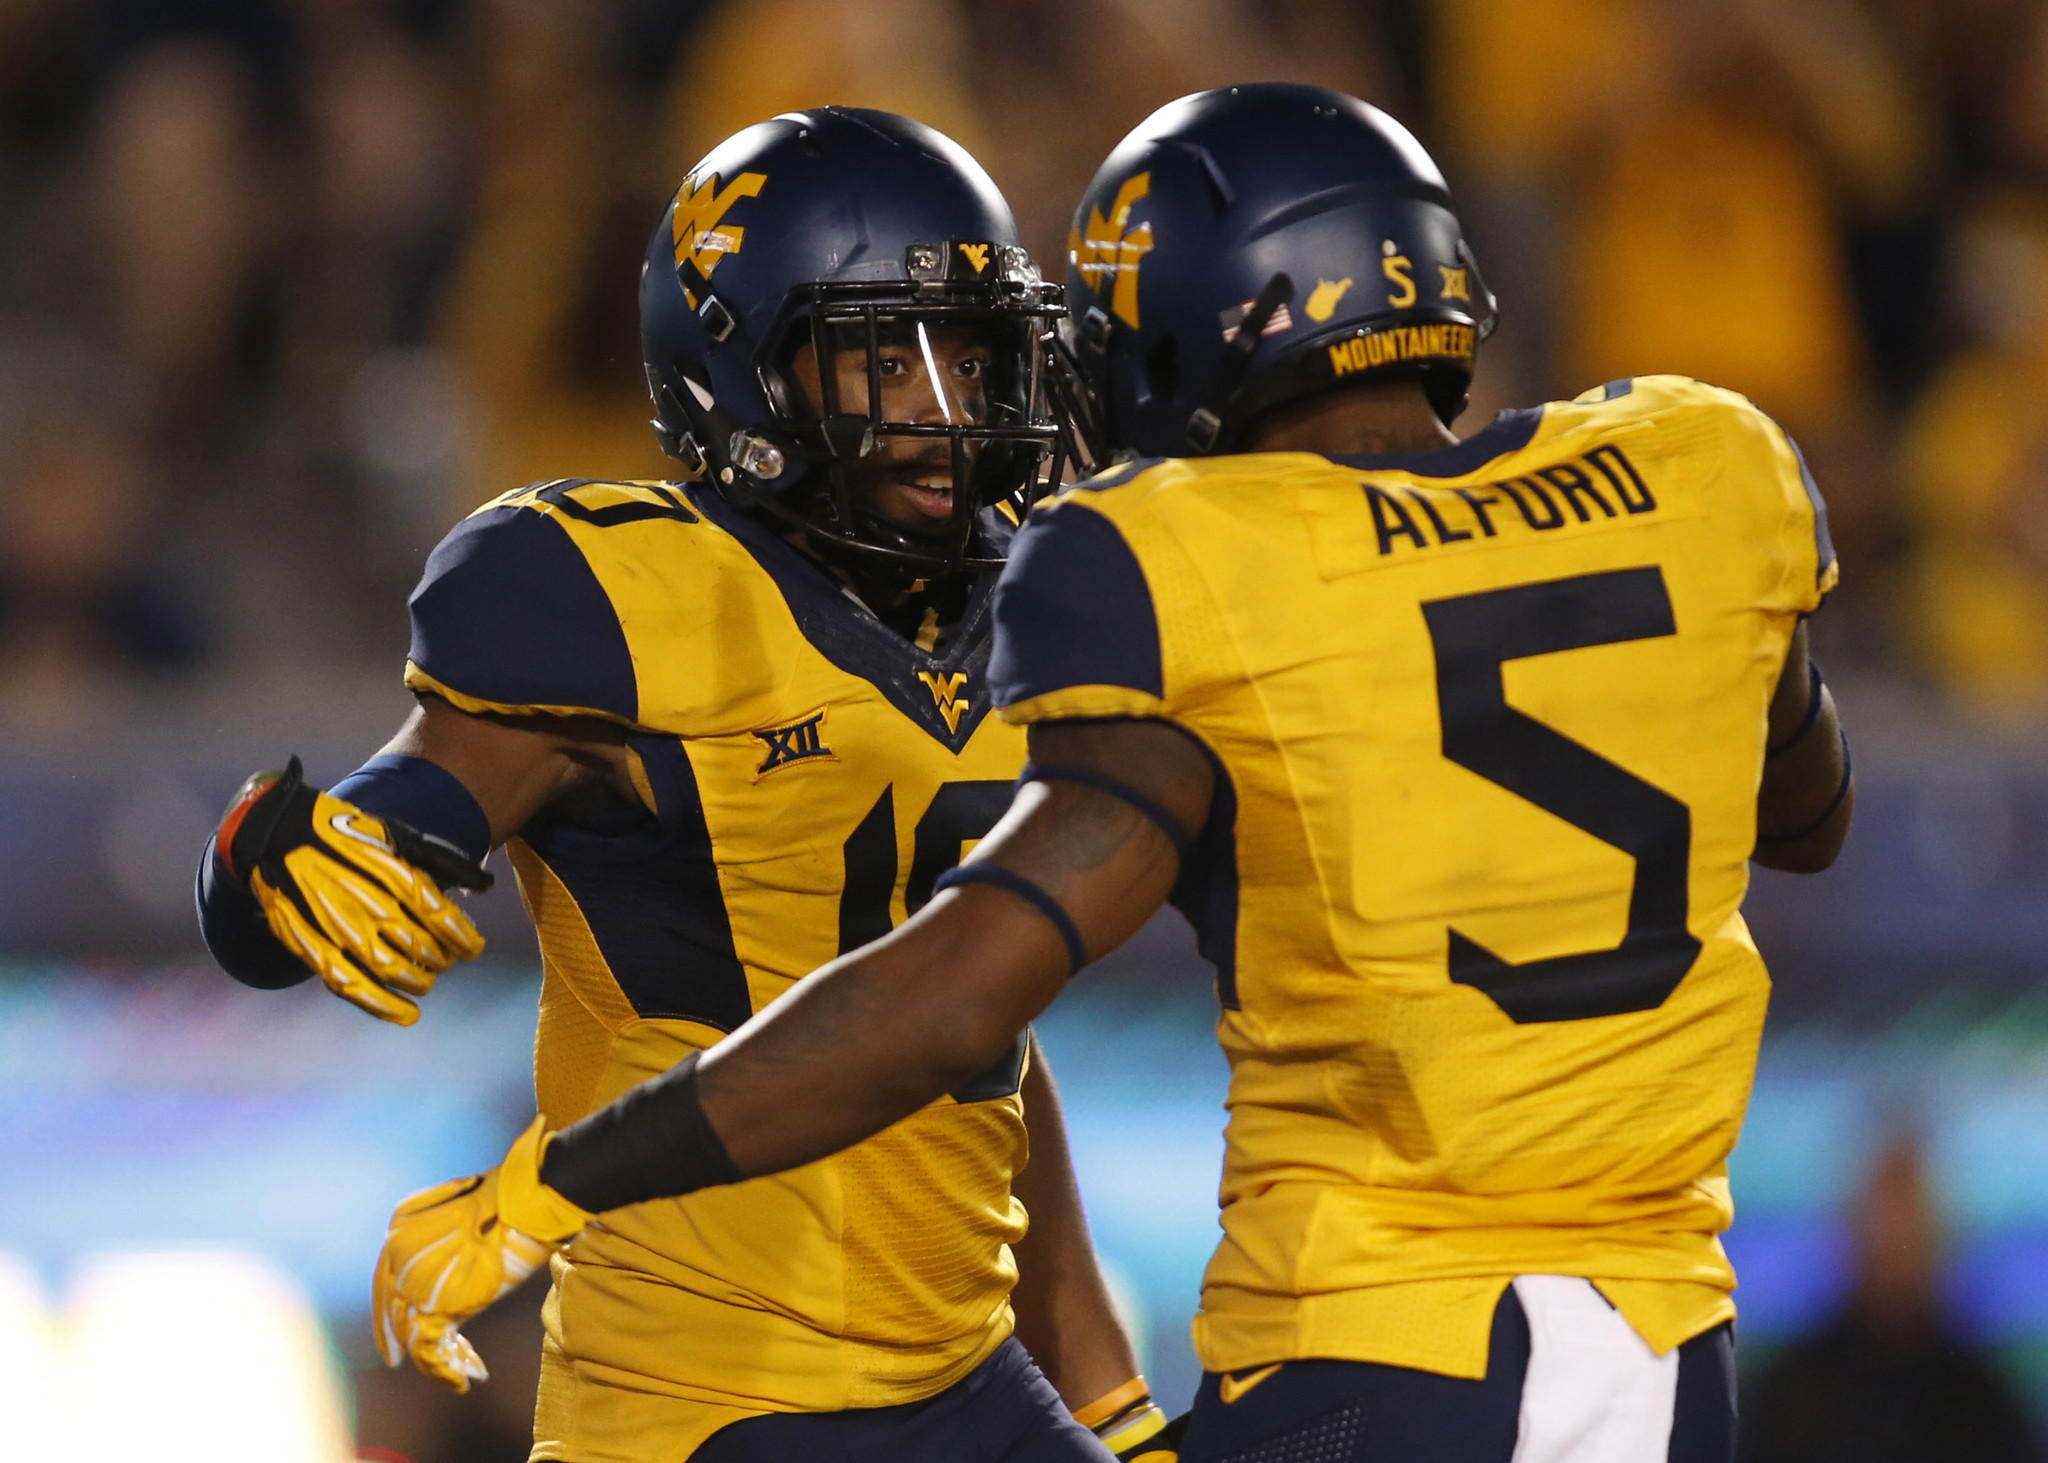 The Mountaineers hung with Alabama in their season-opener, then walloped Towson 54-0 last week.